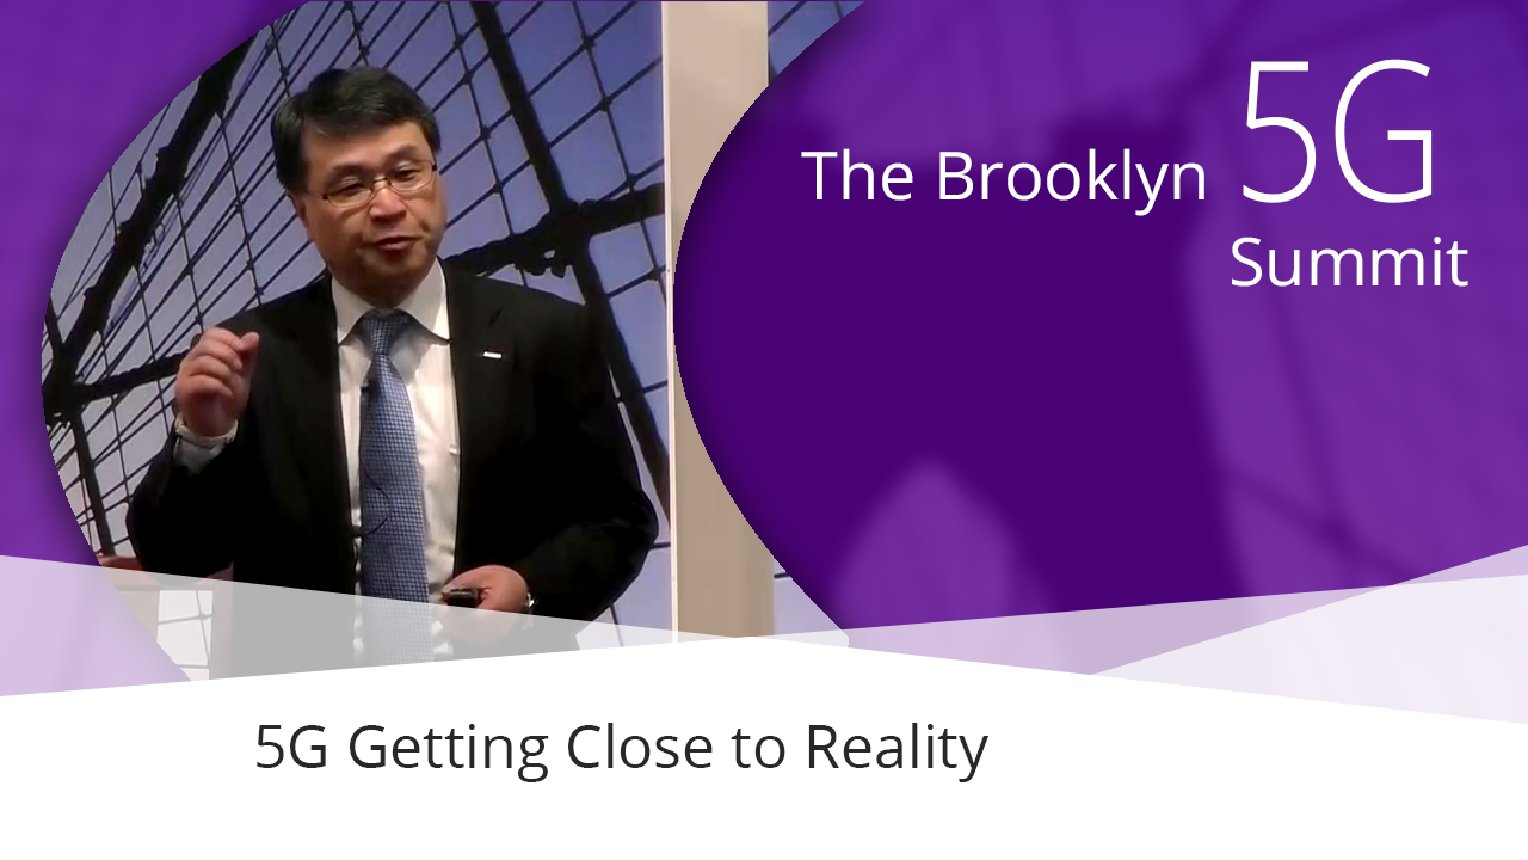 5G Getting Close to Reality - Seizo Onoe: Brooklyn 5G Summit 2017